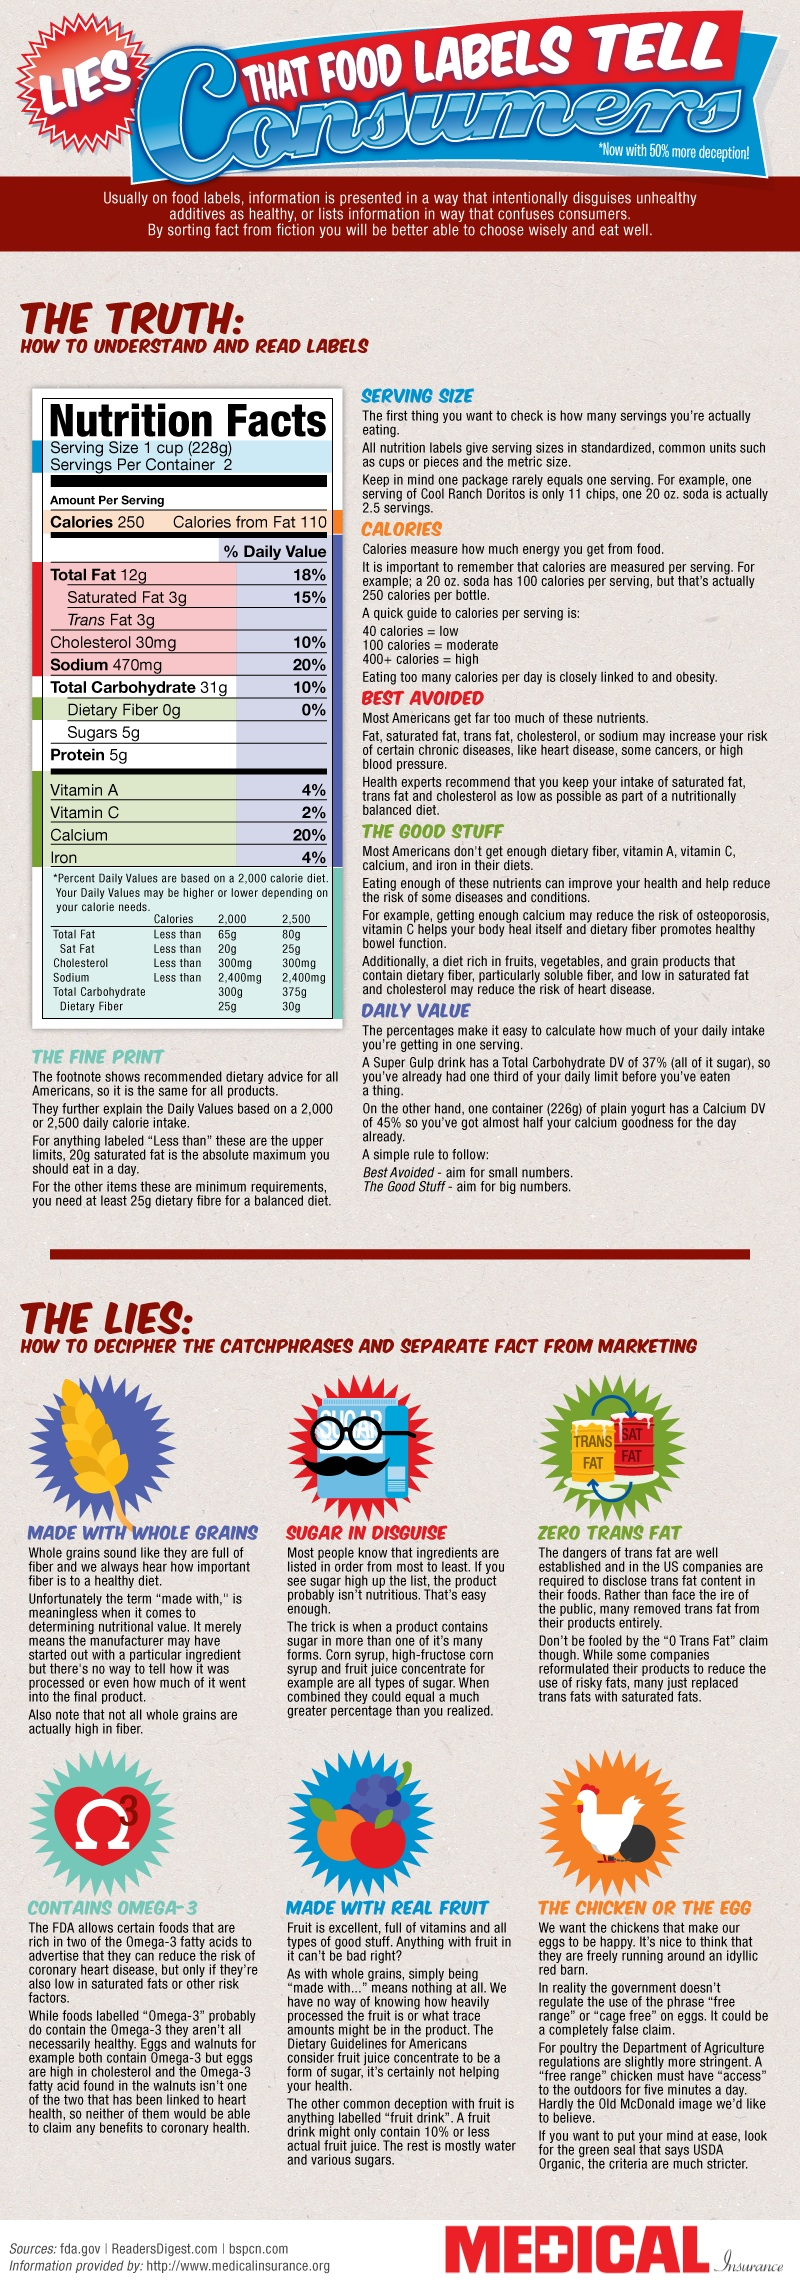 How To Read Food Labels Infographic